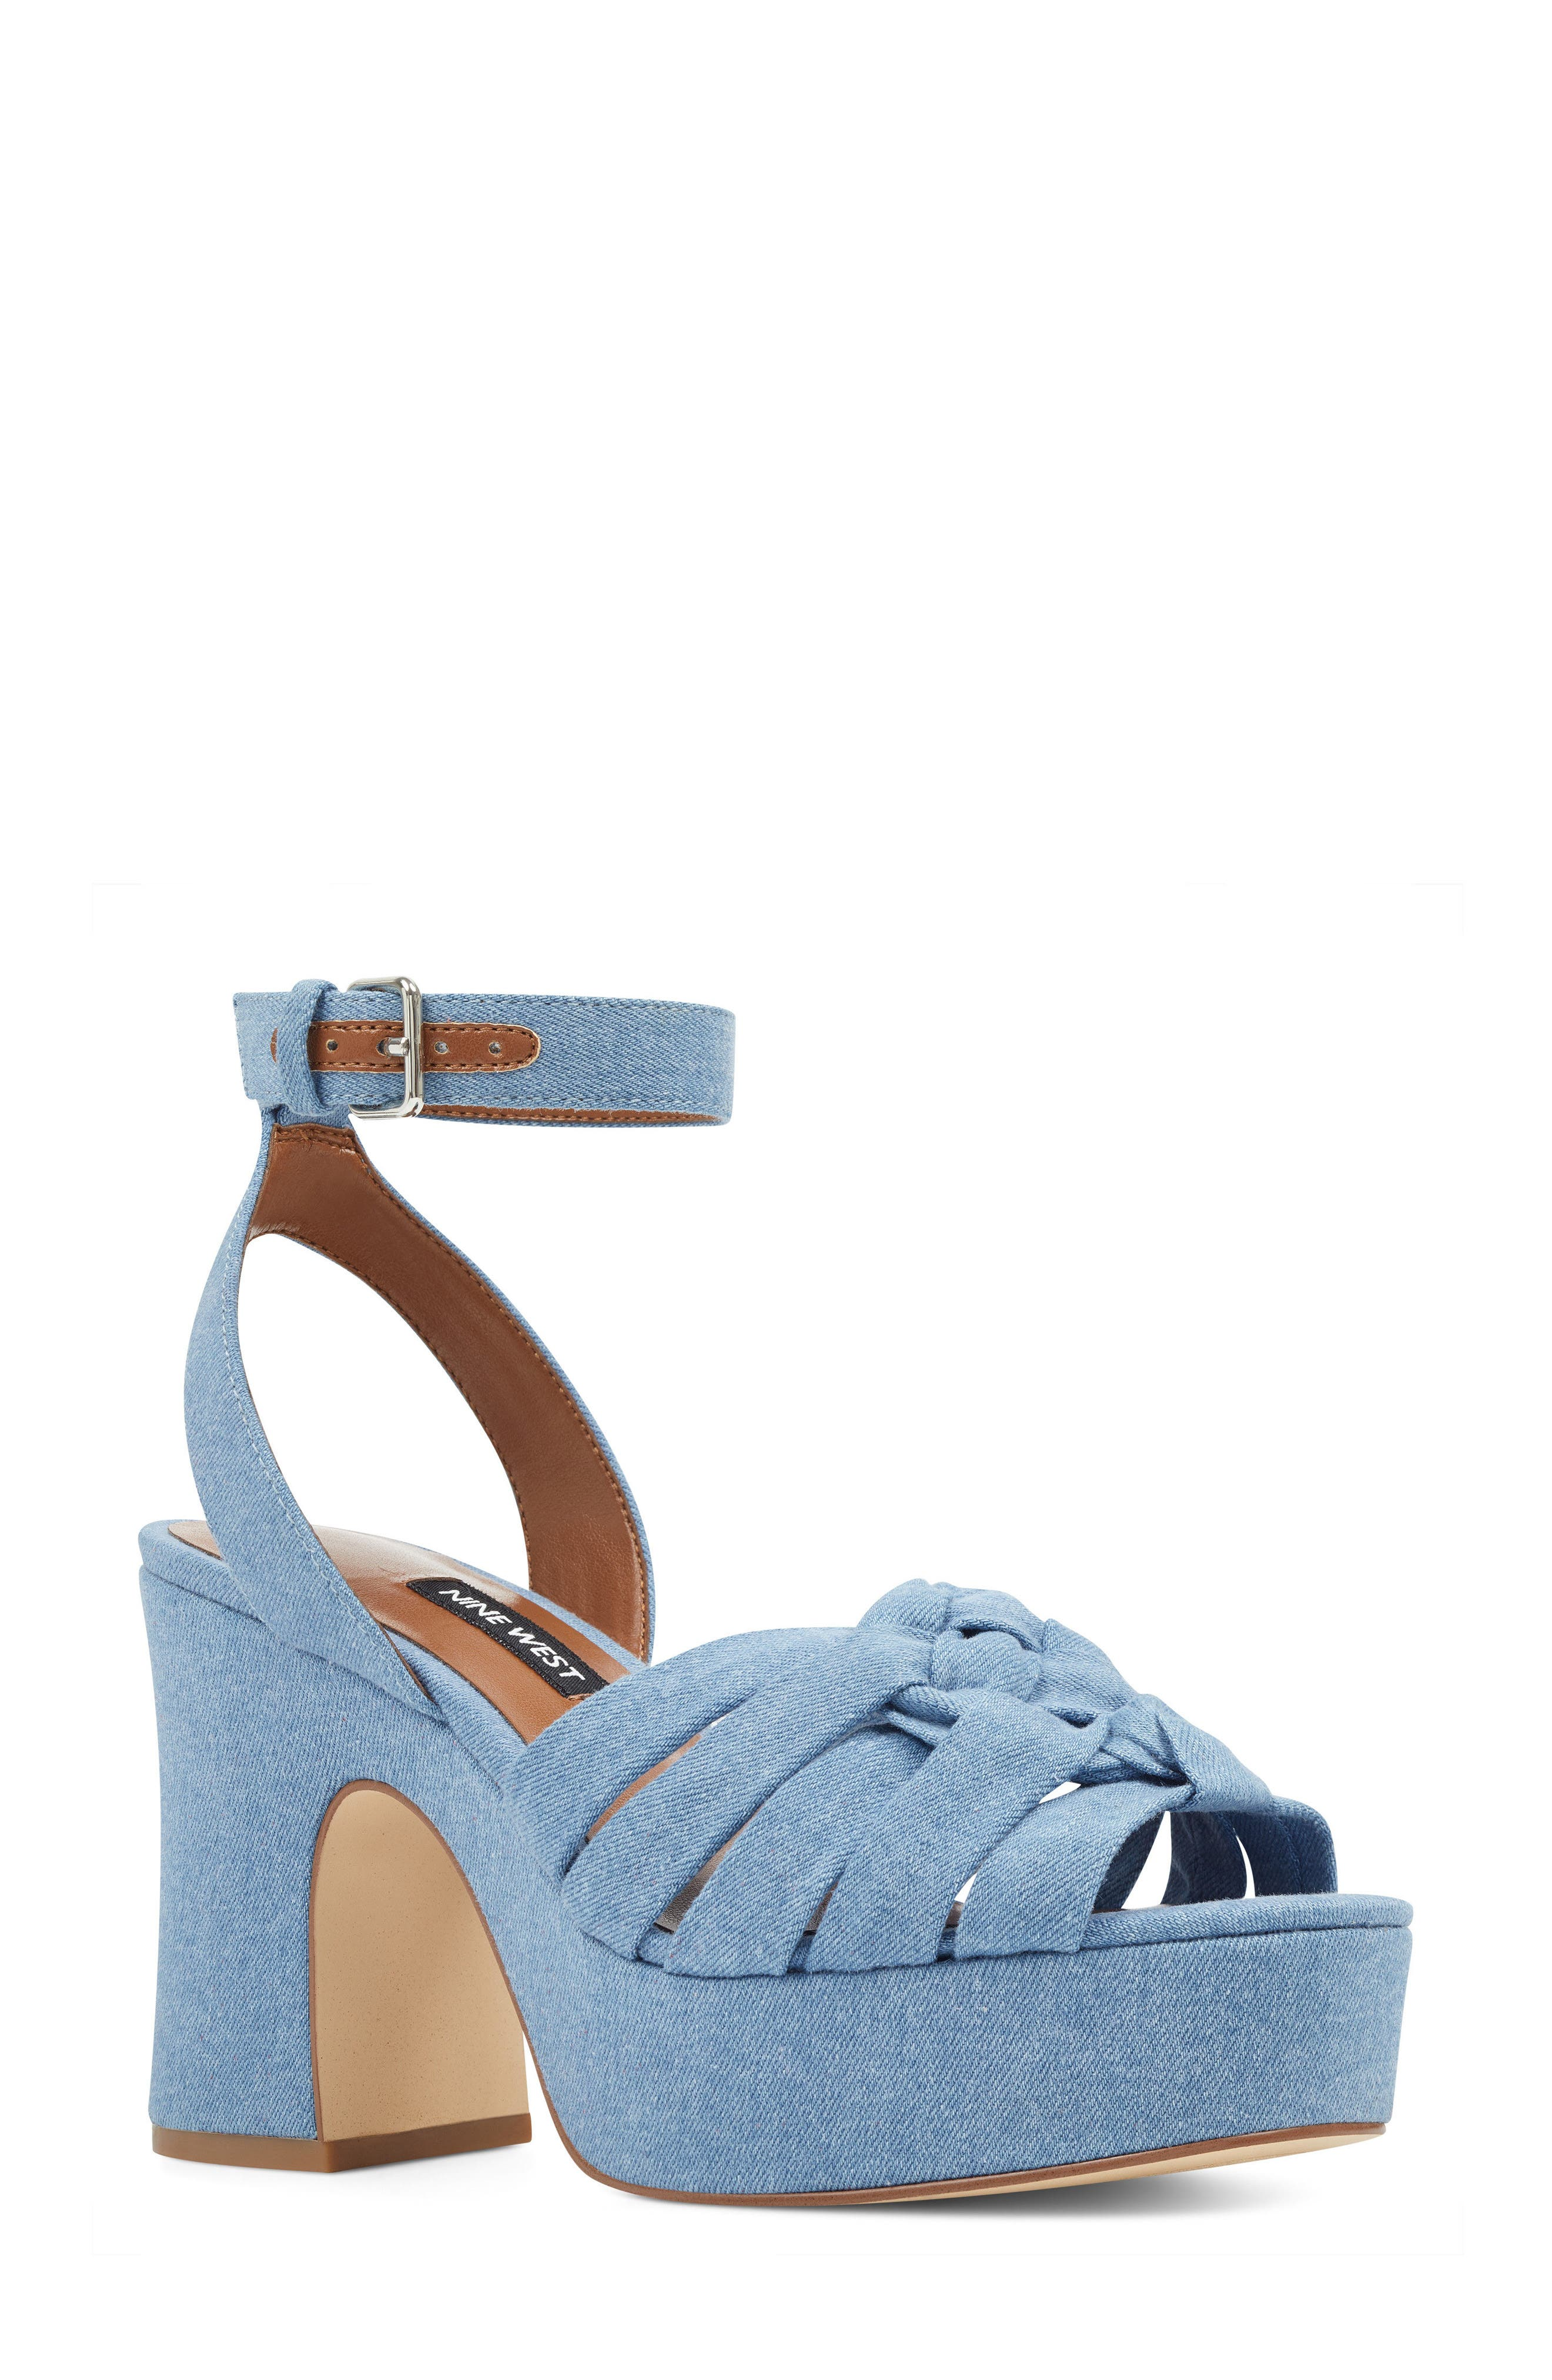 Fetuchini Platform Sandal,                         Main,                         color, Light Blue Denim